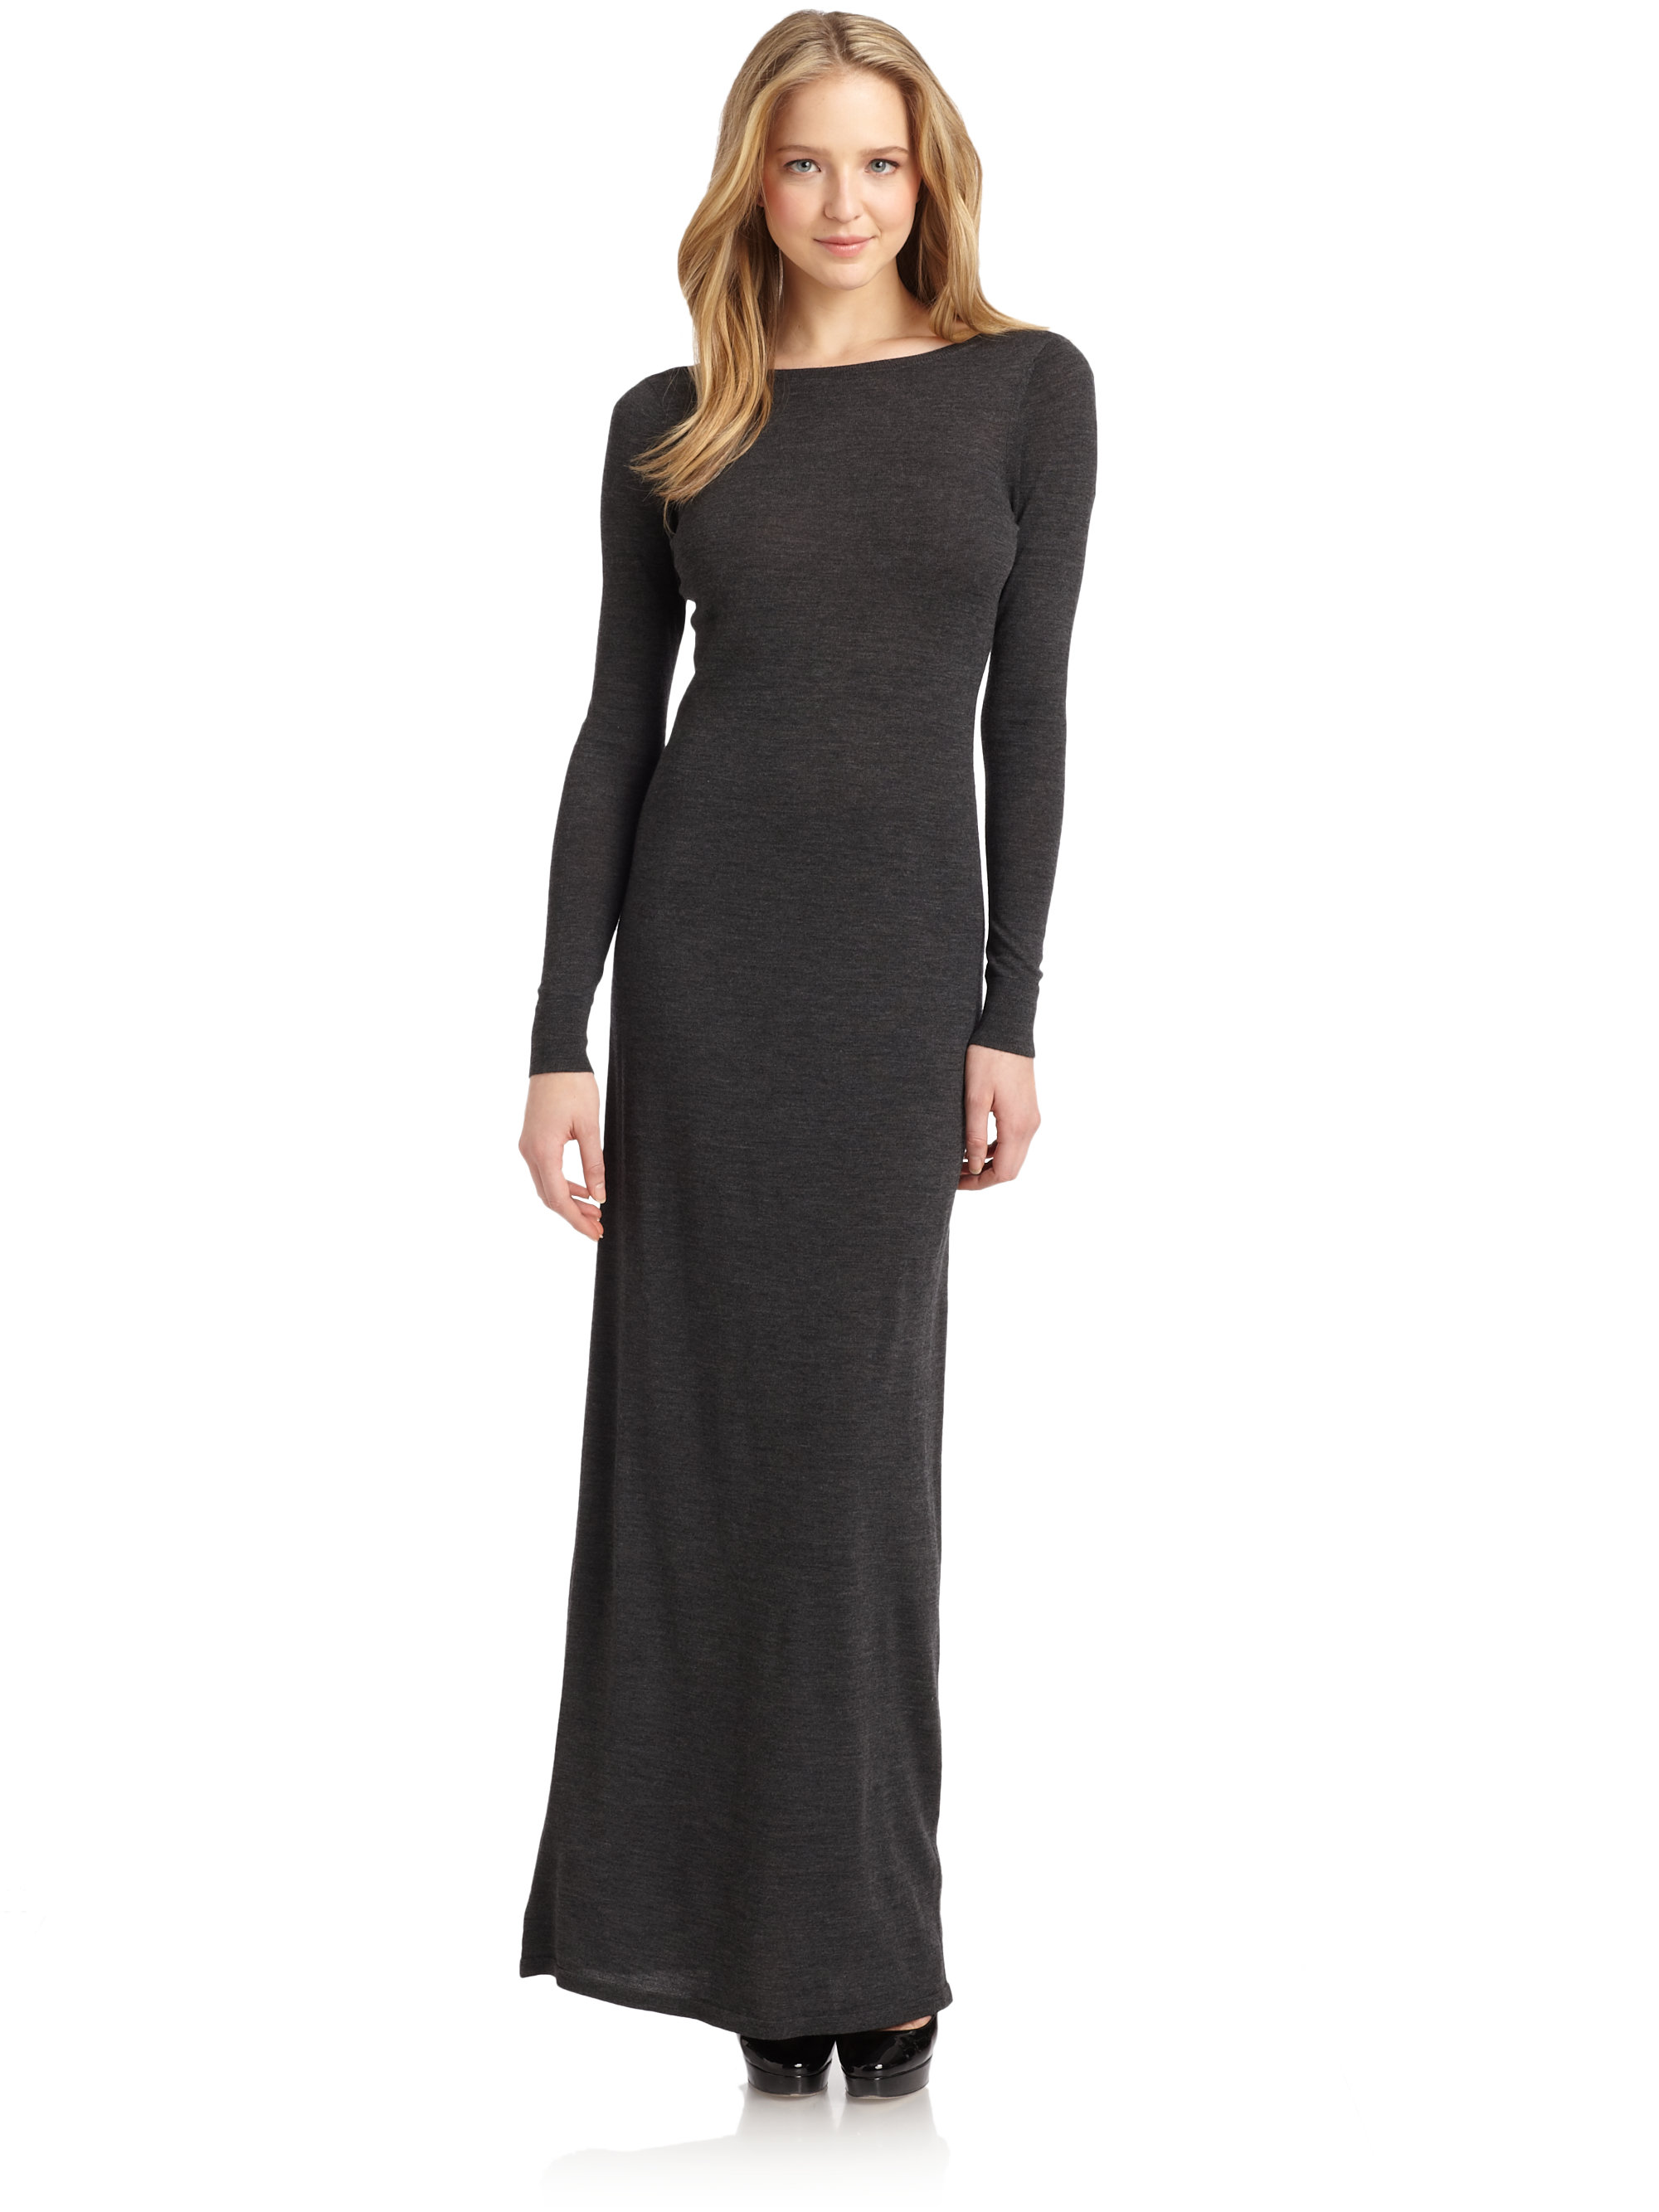 Halston Merino Wool Maxi Dress in Gray | Lyst